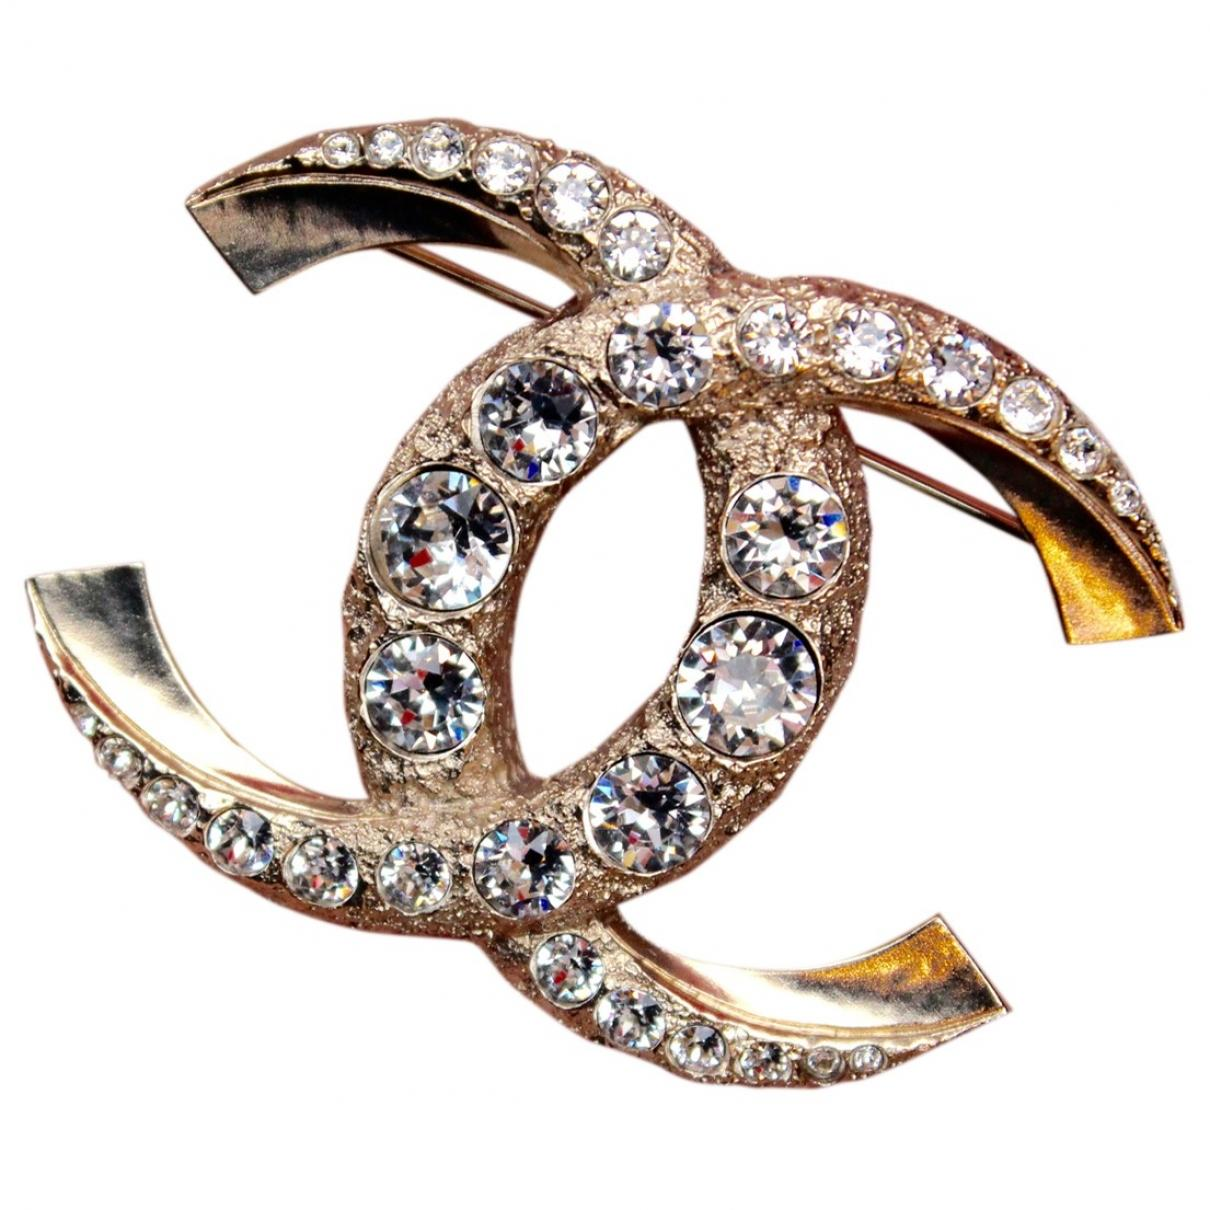 Lyst - Chanel Pre-owned Cc Gold Metal Pins & Brooches in